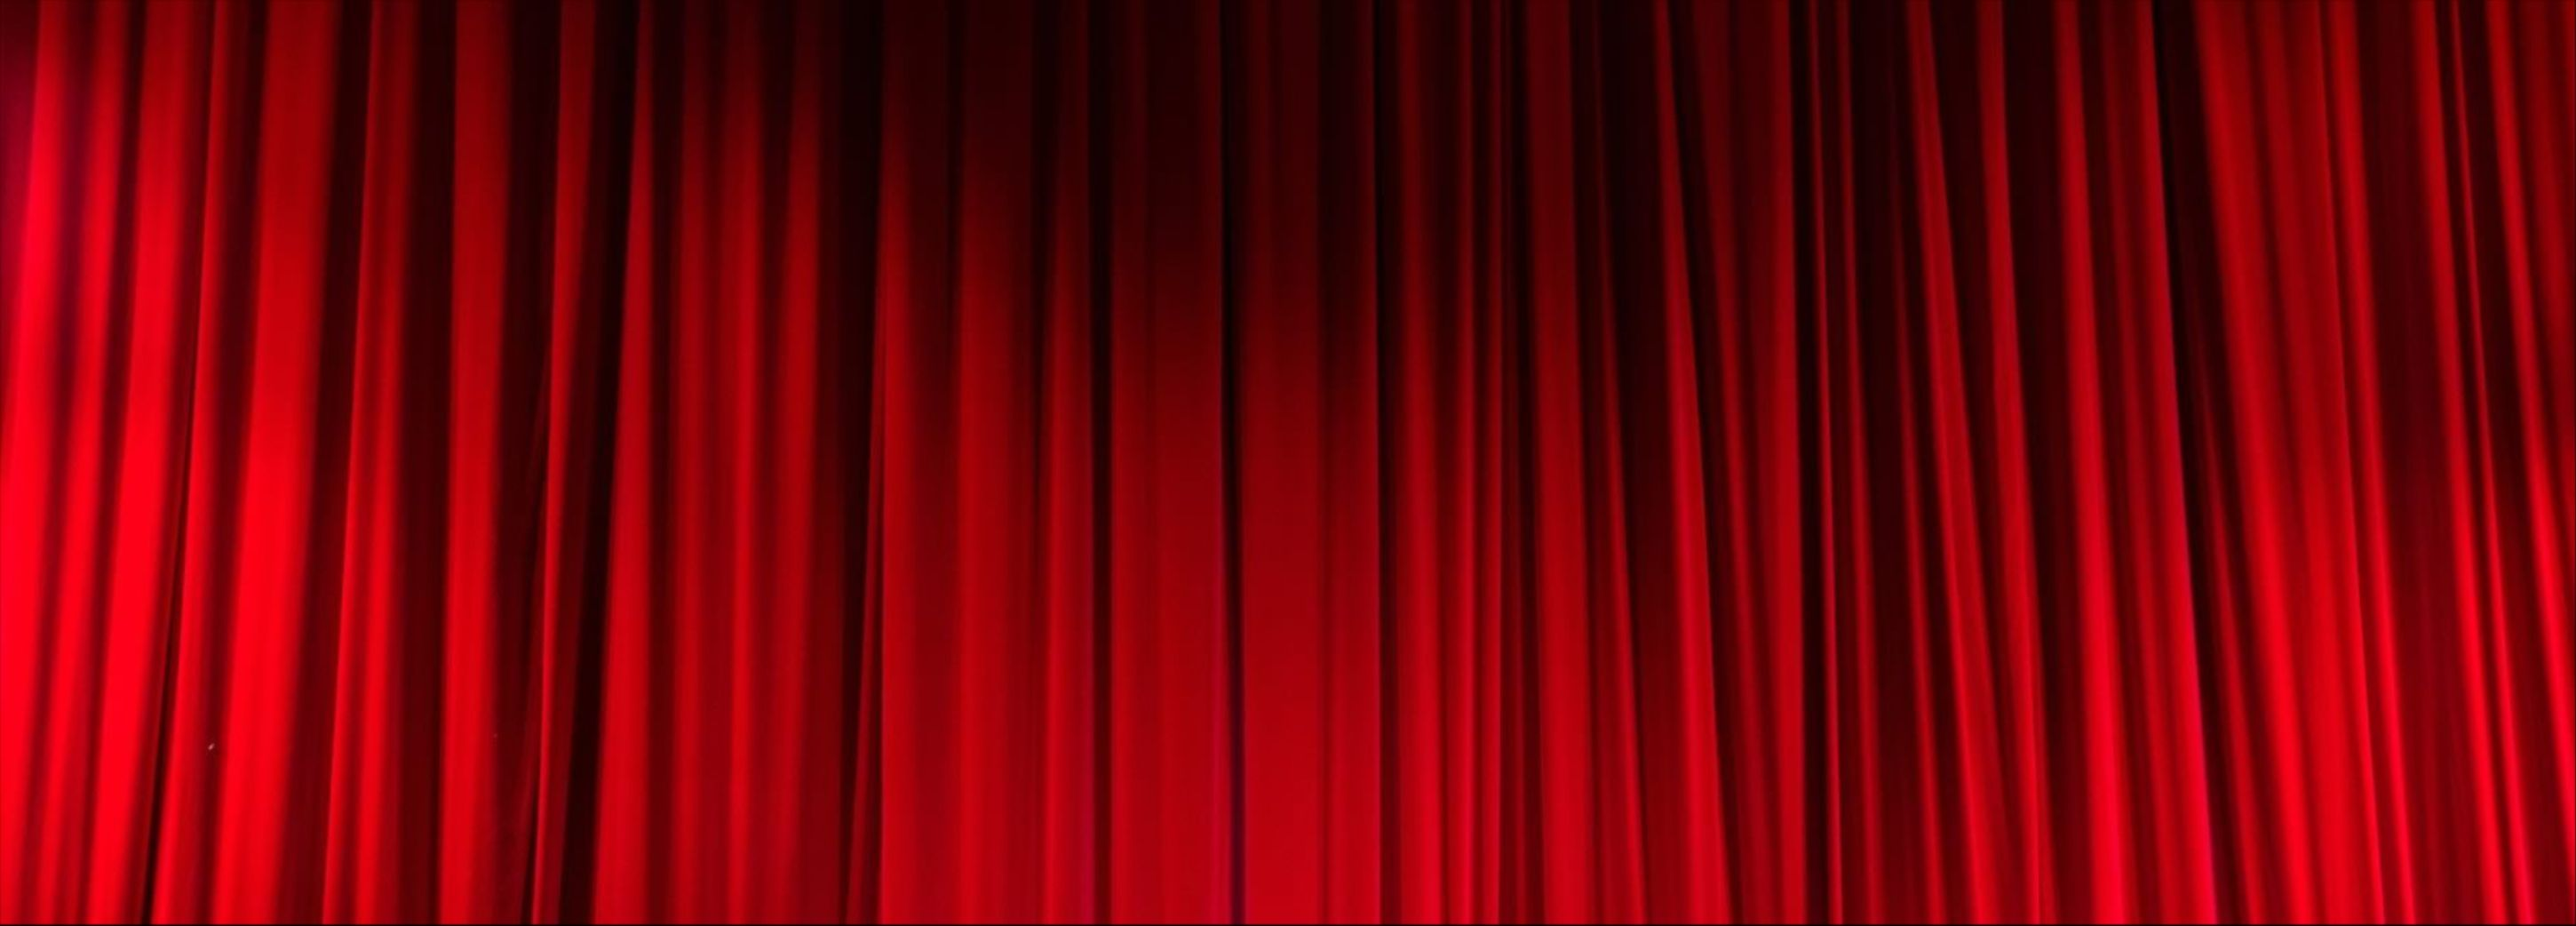 red curtain wide.jpg